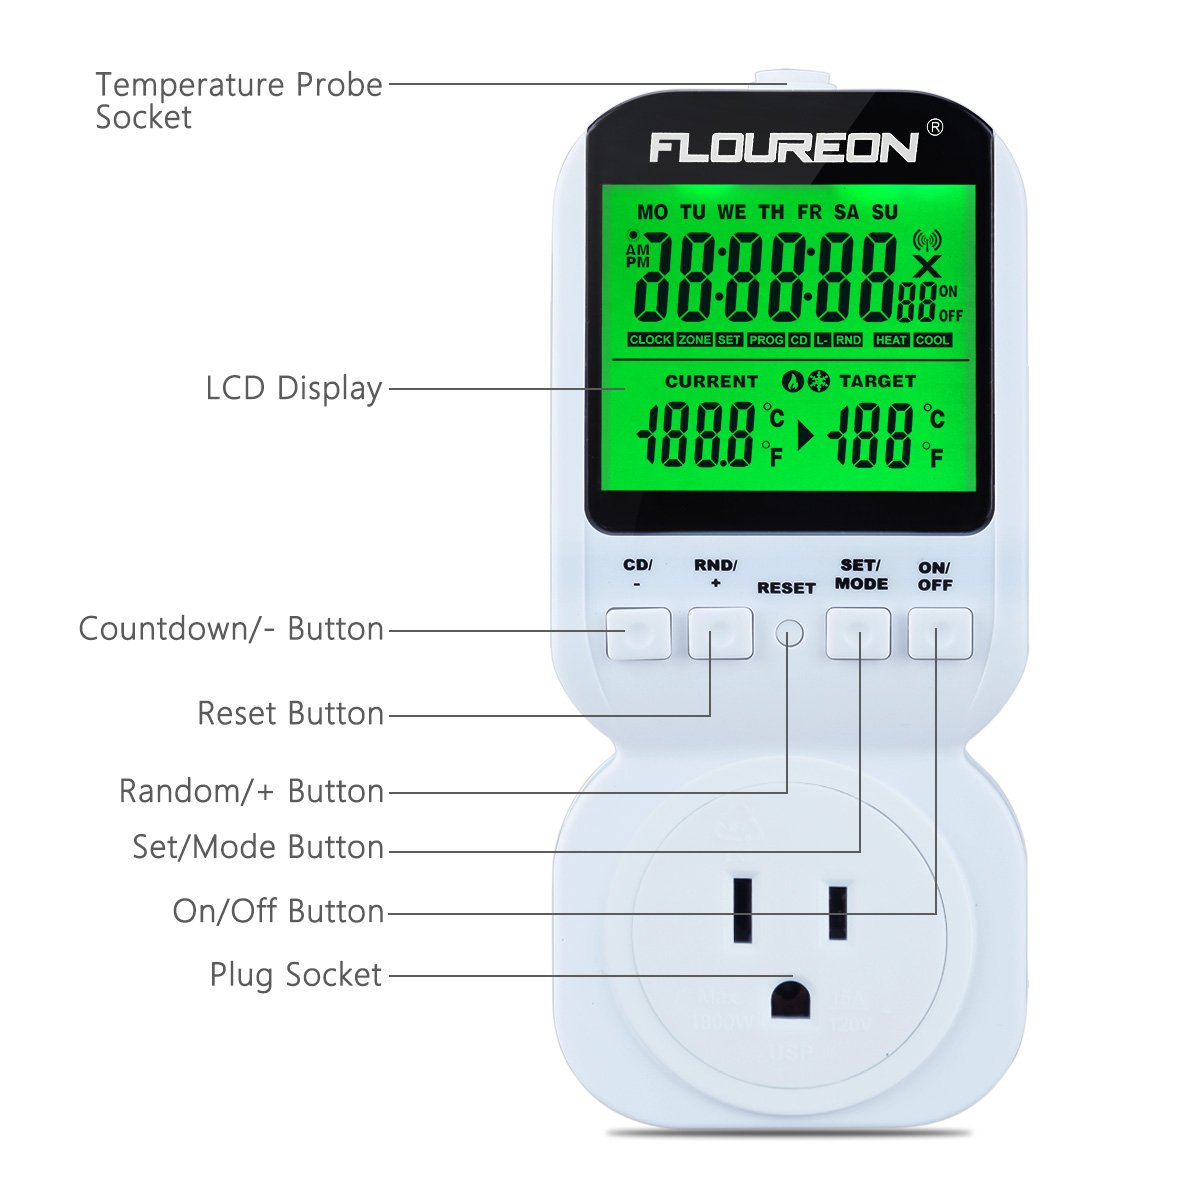 FLOUREON Thermostat Timer Switch Socket Plug ON/OFF Control 12H/24H for Heat and Cool Electrical Appliances Temperature Controller US Plug - - Amazon.com